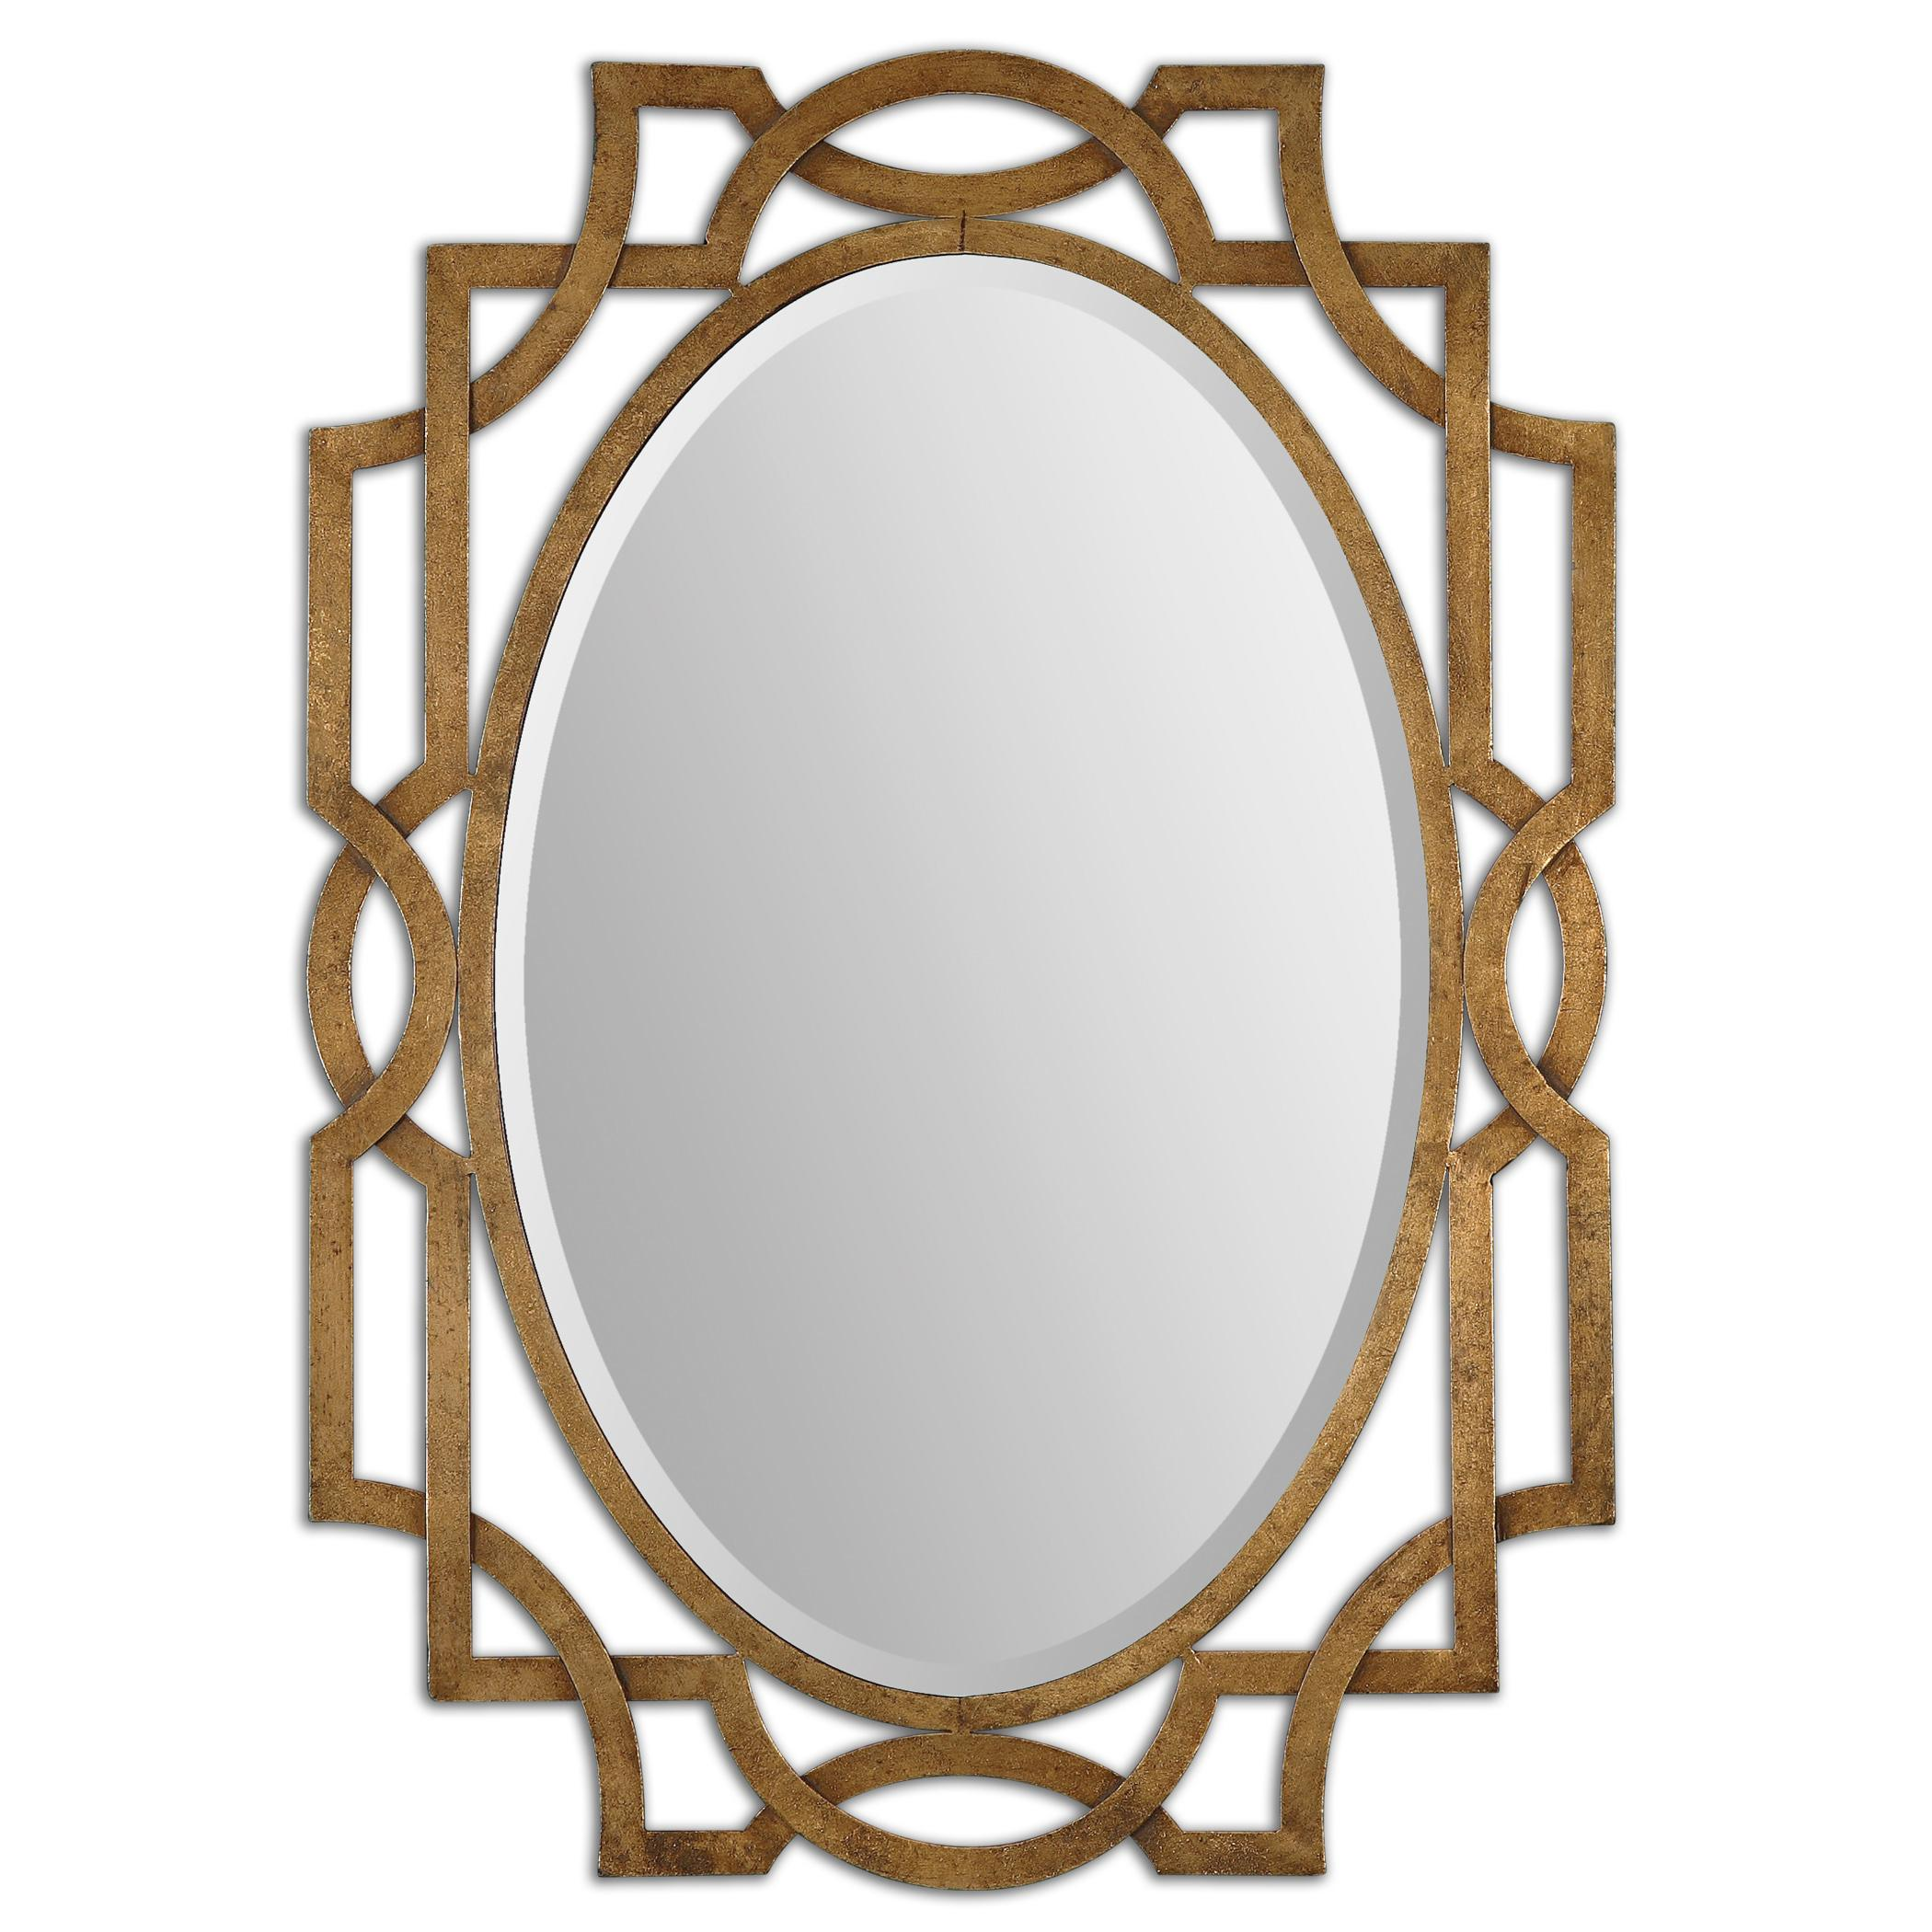 Uttermost Mirrors Margutta Gold Oval Mirror - Item Number: 12869